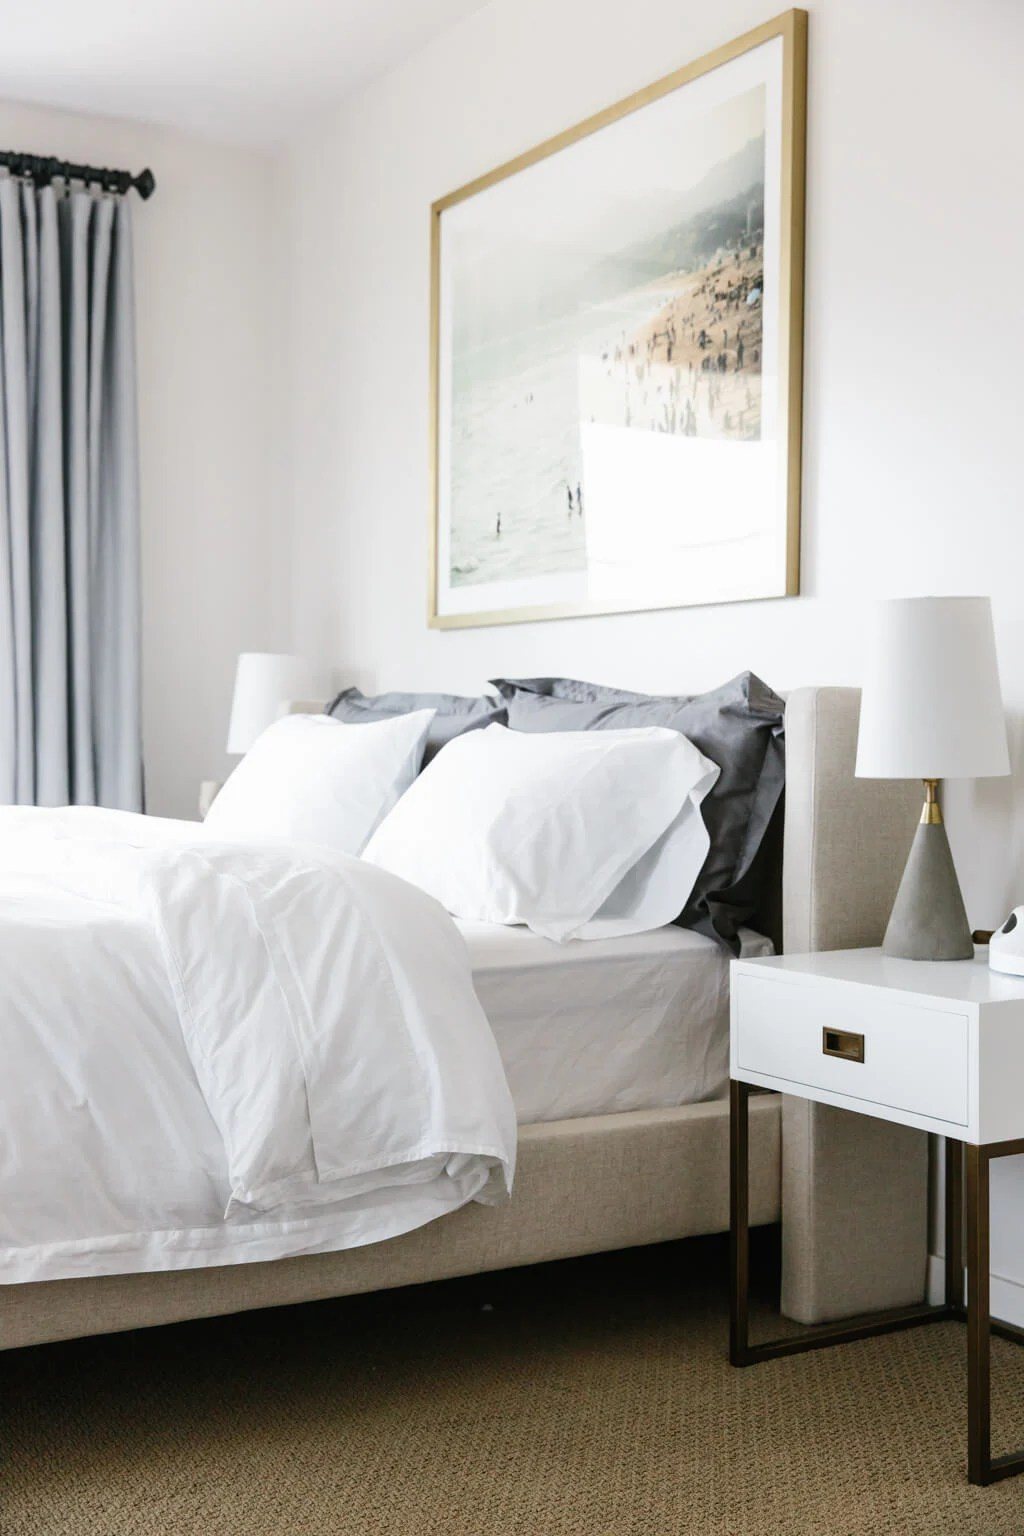 My Modern and Minimalist Bedroom Design with Havenly ... on Bedroom Minimalist Design  id=75651